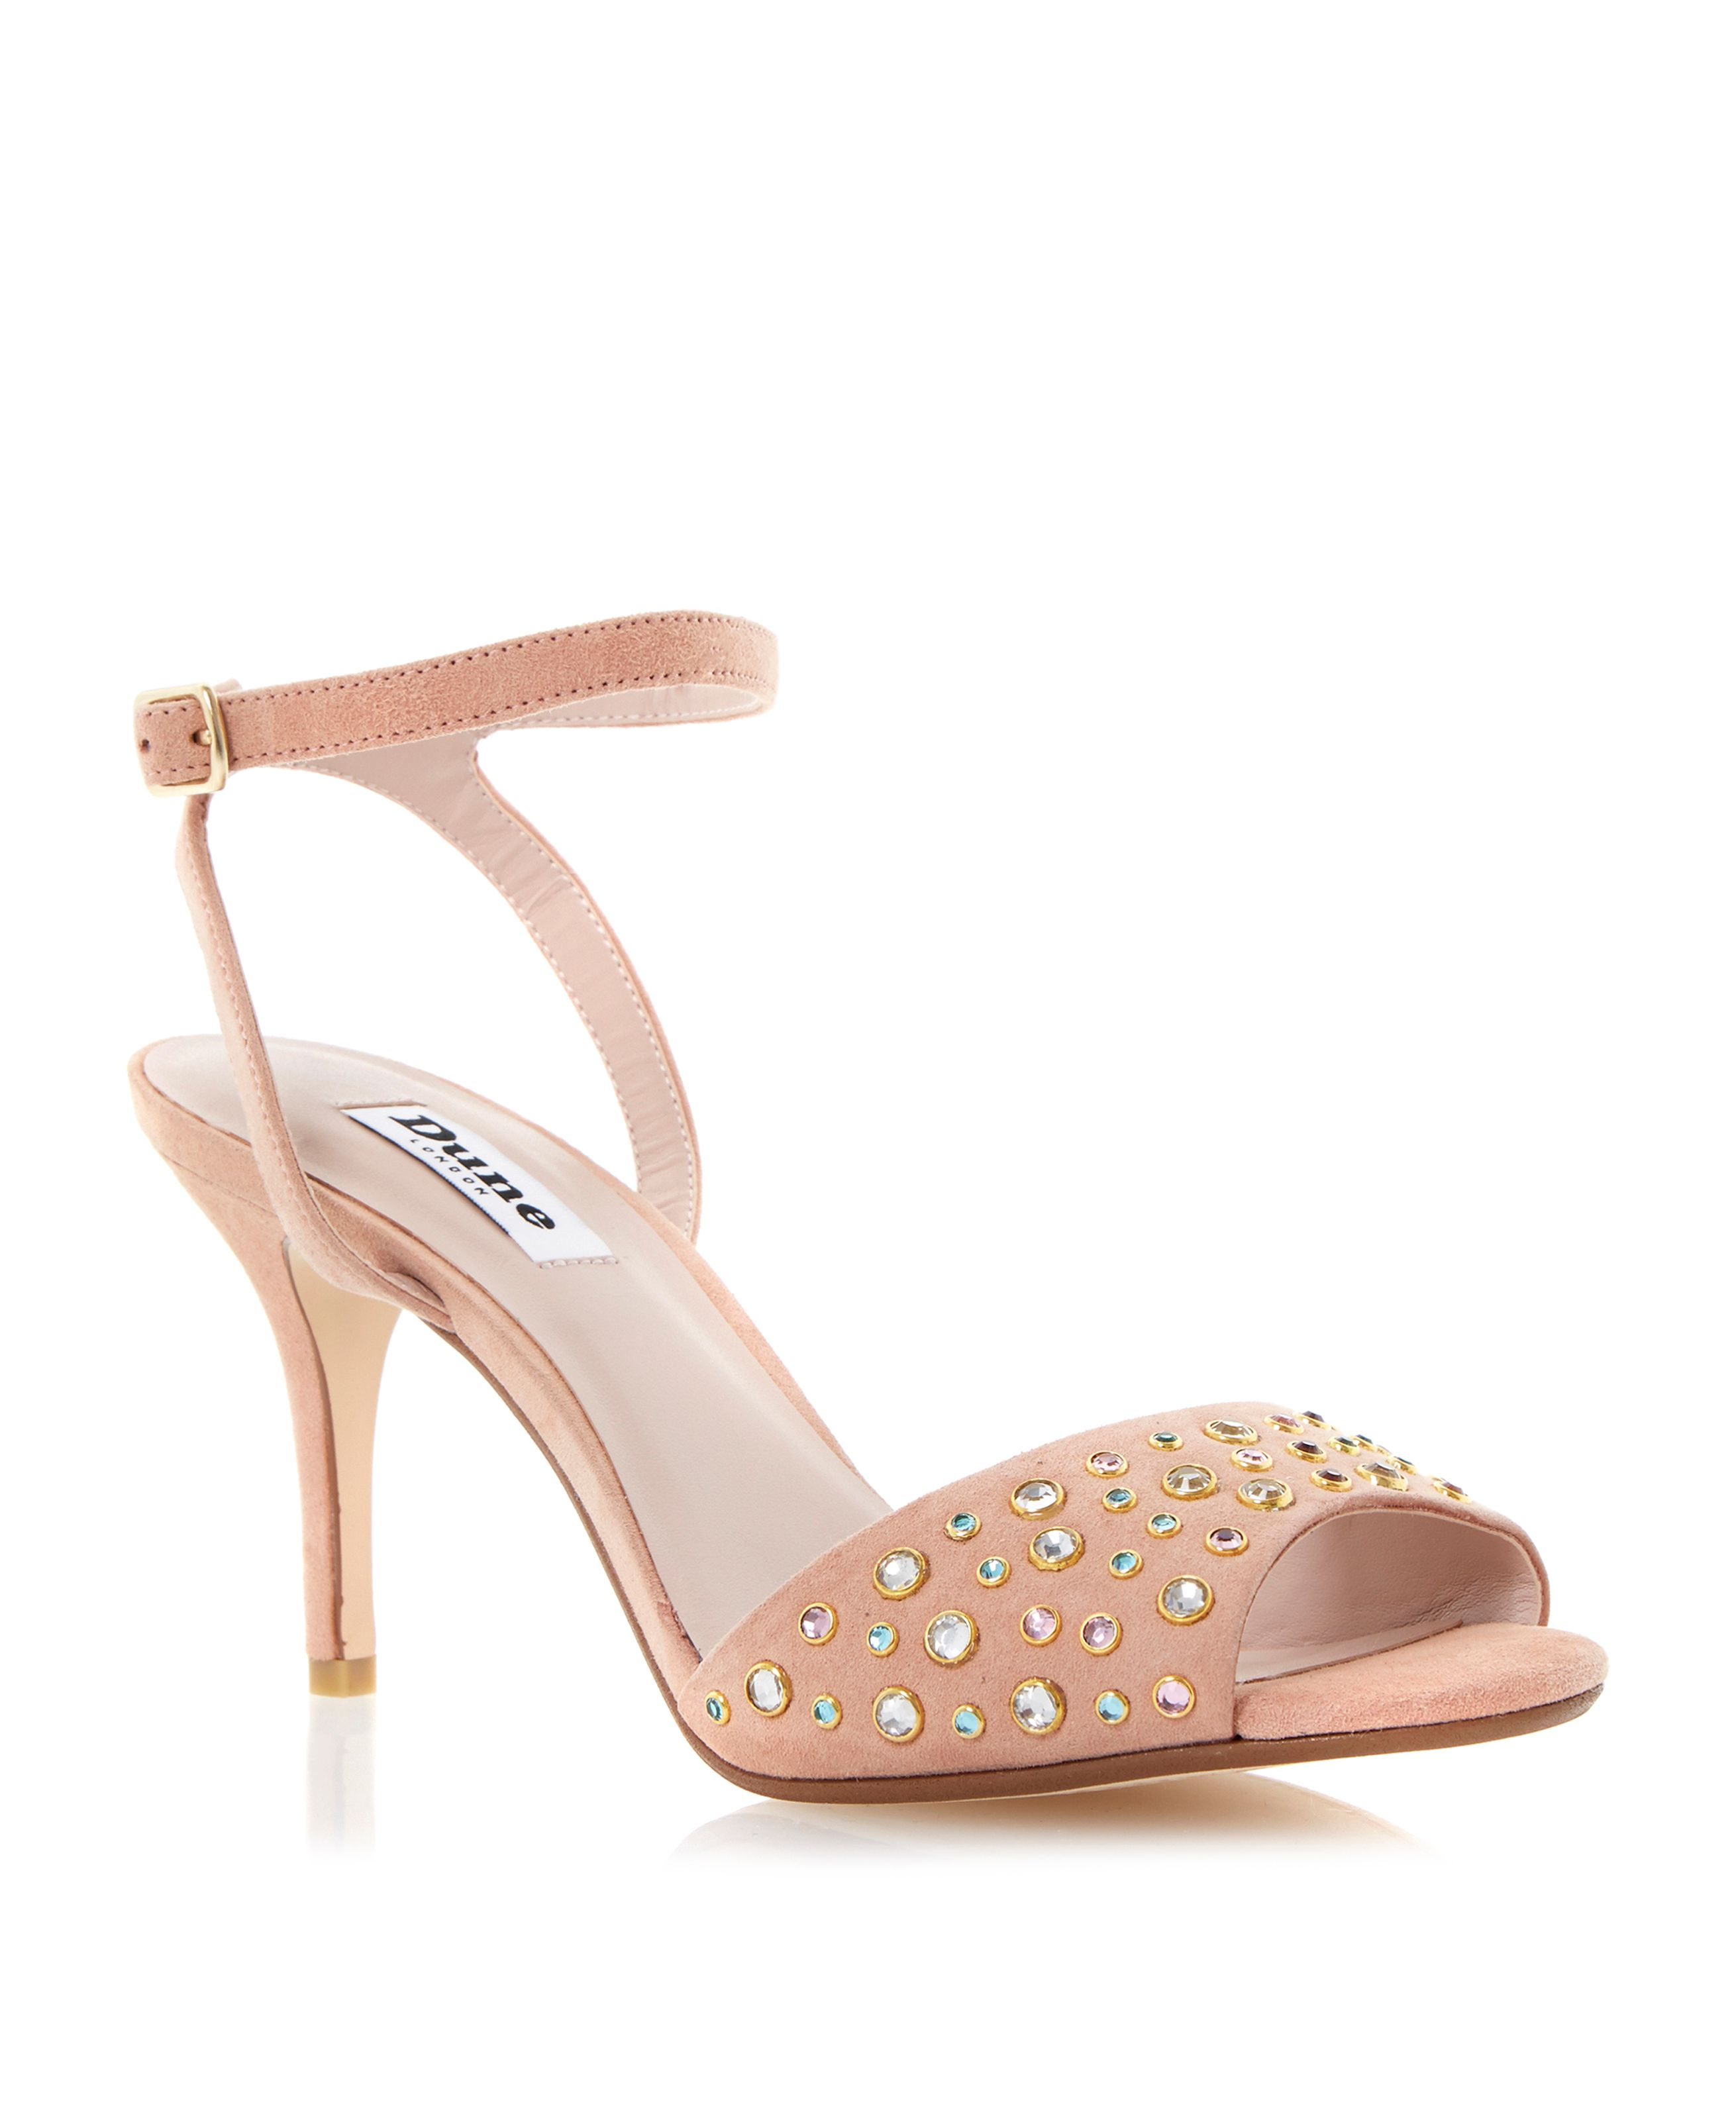 Hepburnn jewelled mid heel sandals